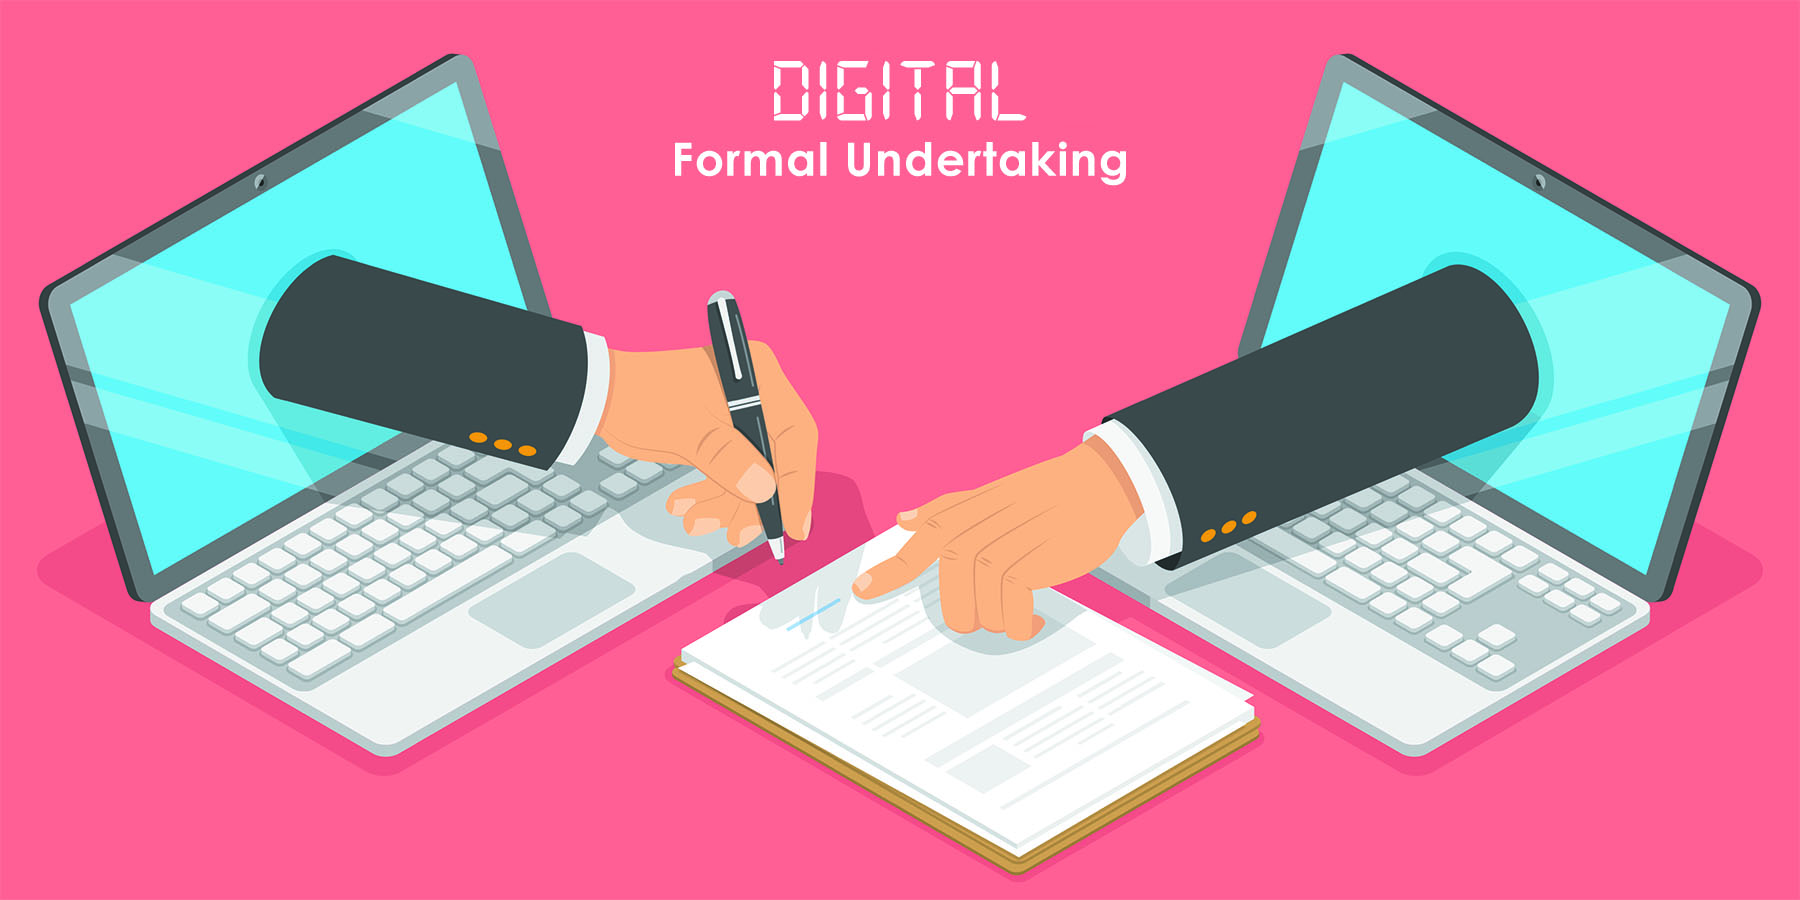 How to digitally create and send a Formal Undertaking to a Chamber